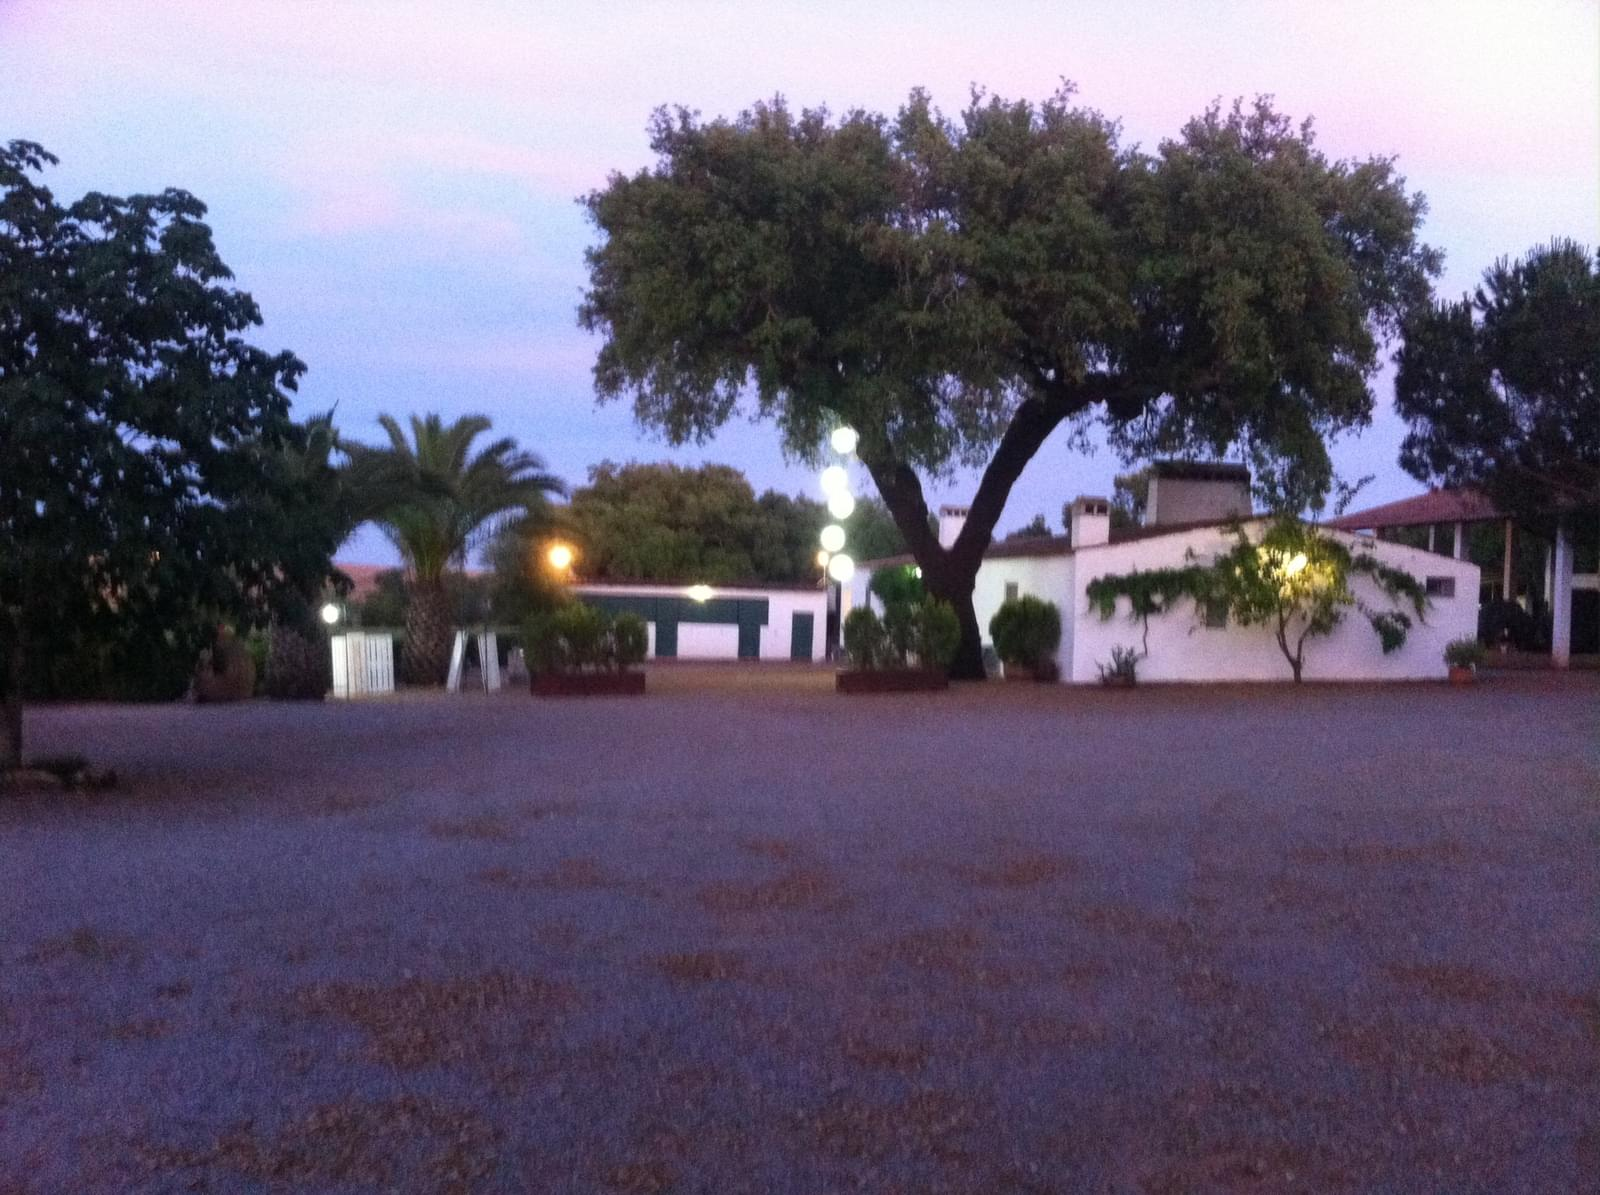 Portugal Wine Country / Vineyard - Real Estate and